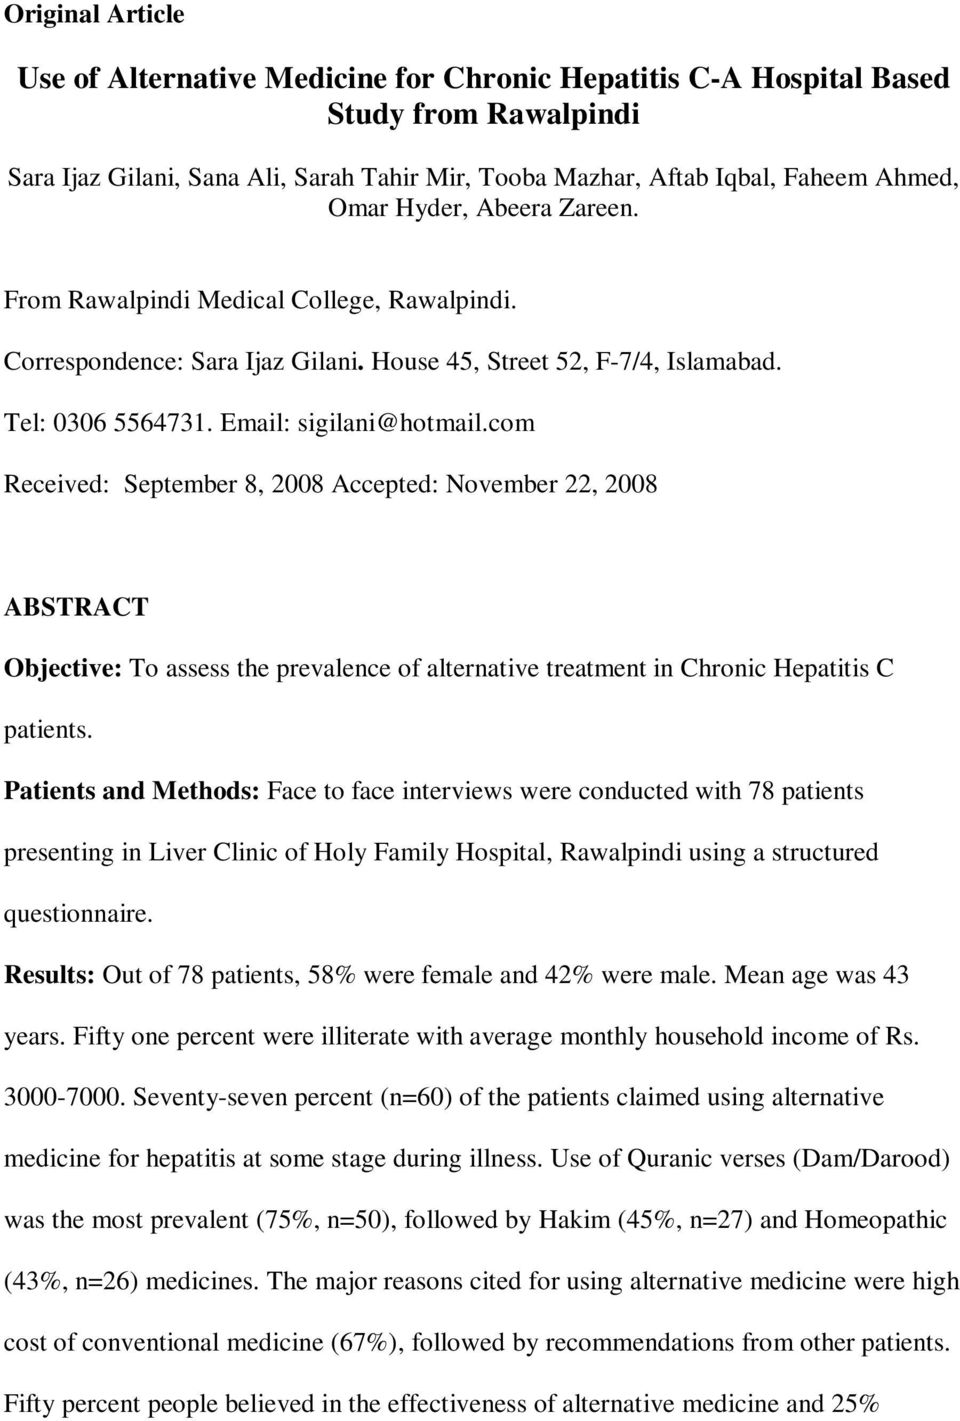 Use of Alternative Medicine for Chronic Hepatitis C-A Hospital Based